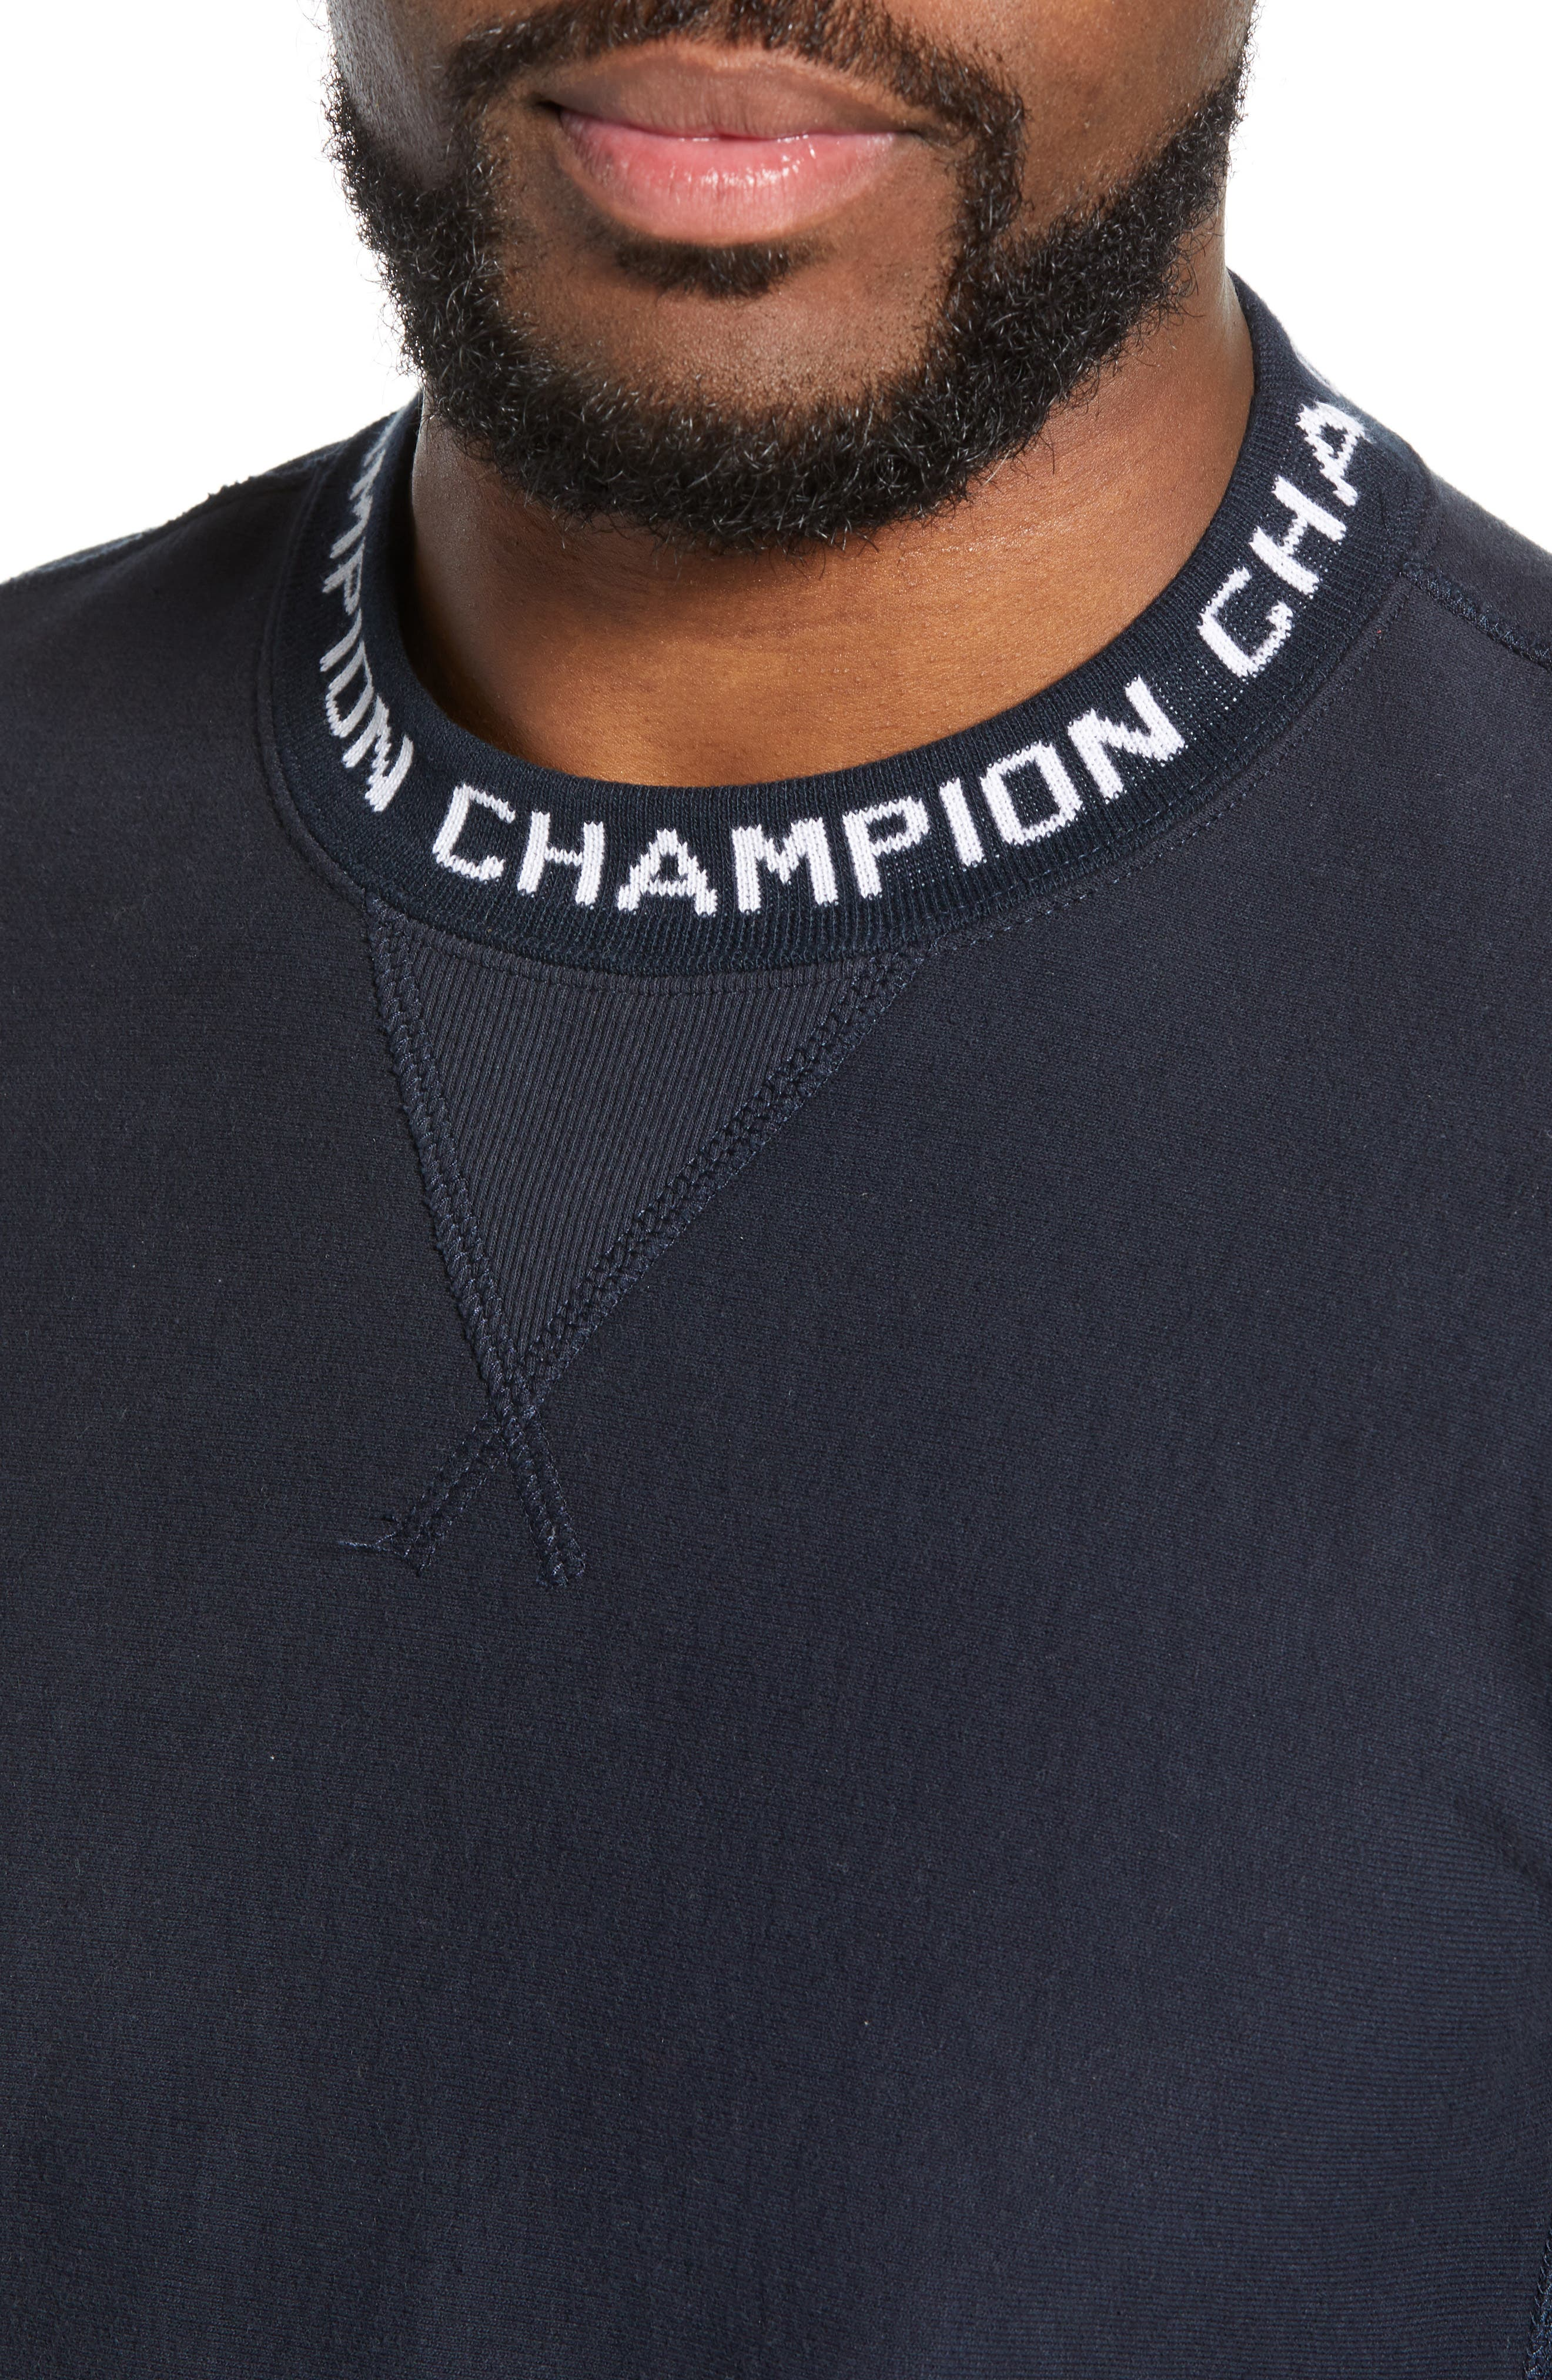 TODD SNYDER + CHAMPION, Todd Snyder x Champion Ribbed Logo Sweatshirt, Alternate thumbnail 4, color, NAVY